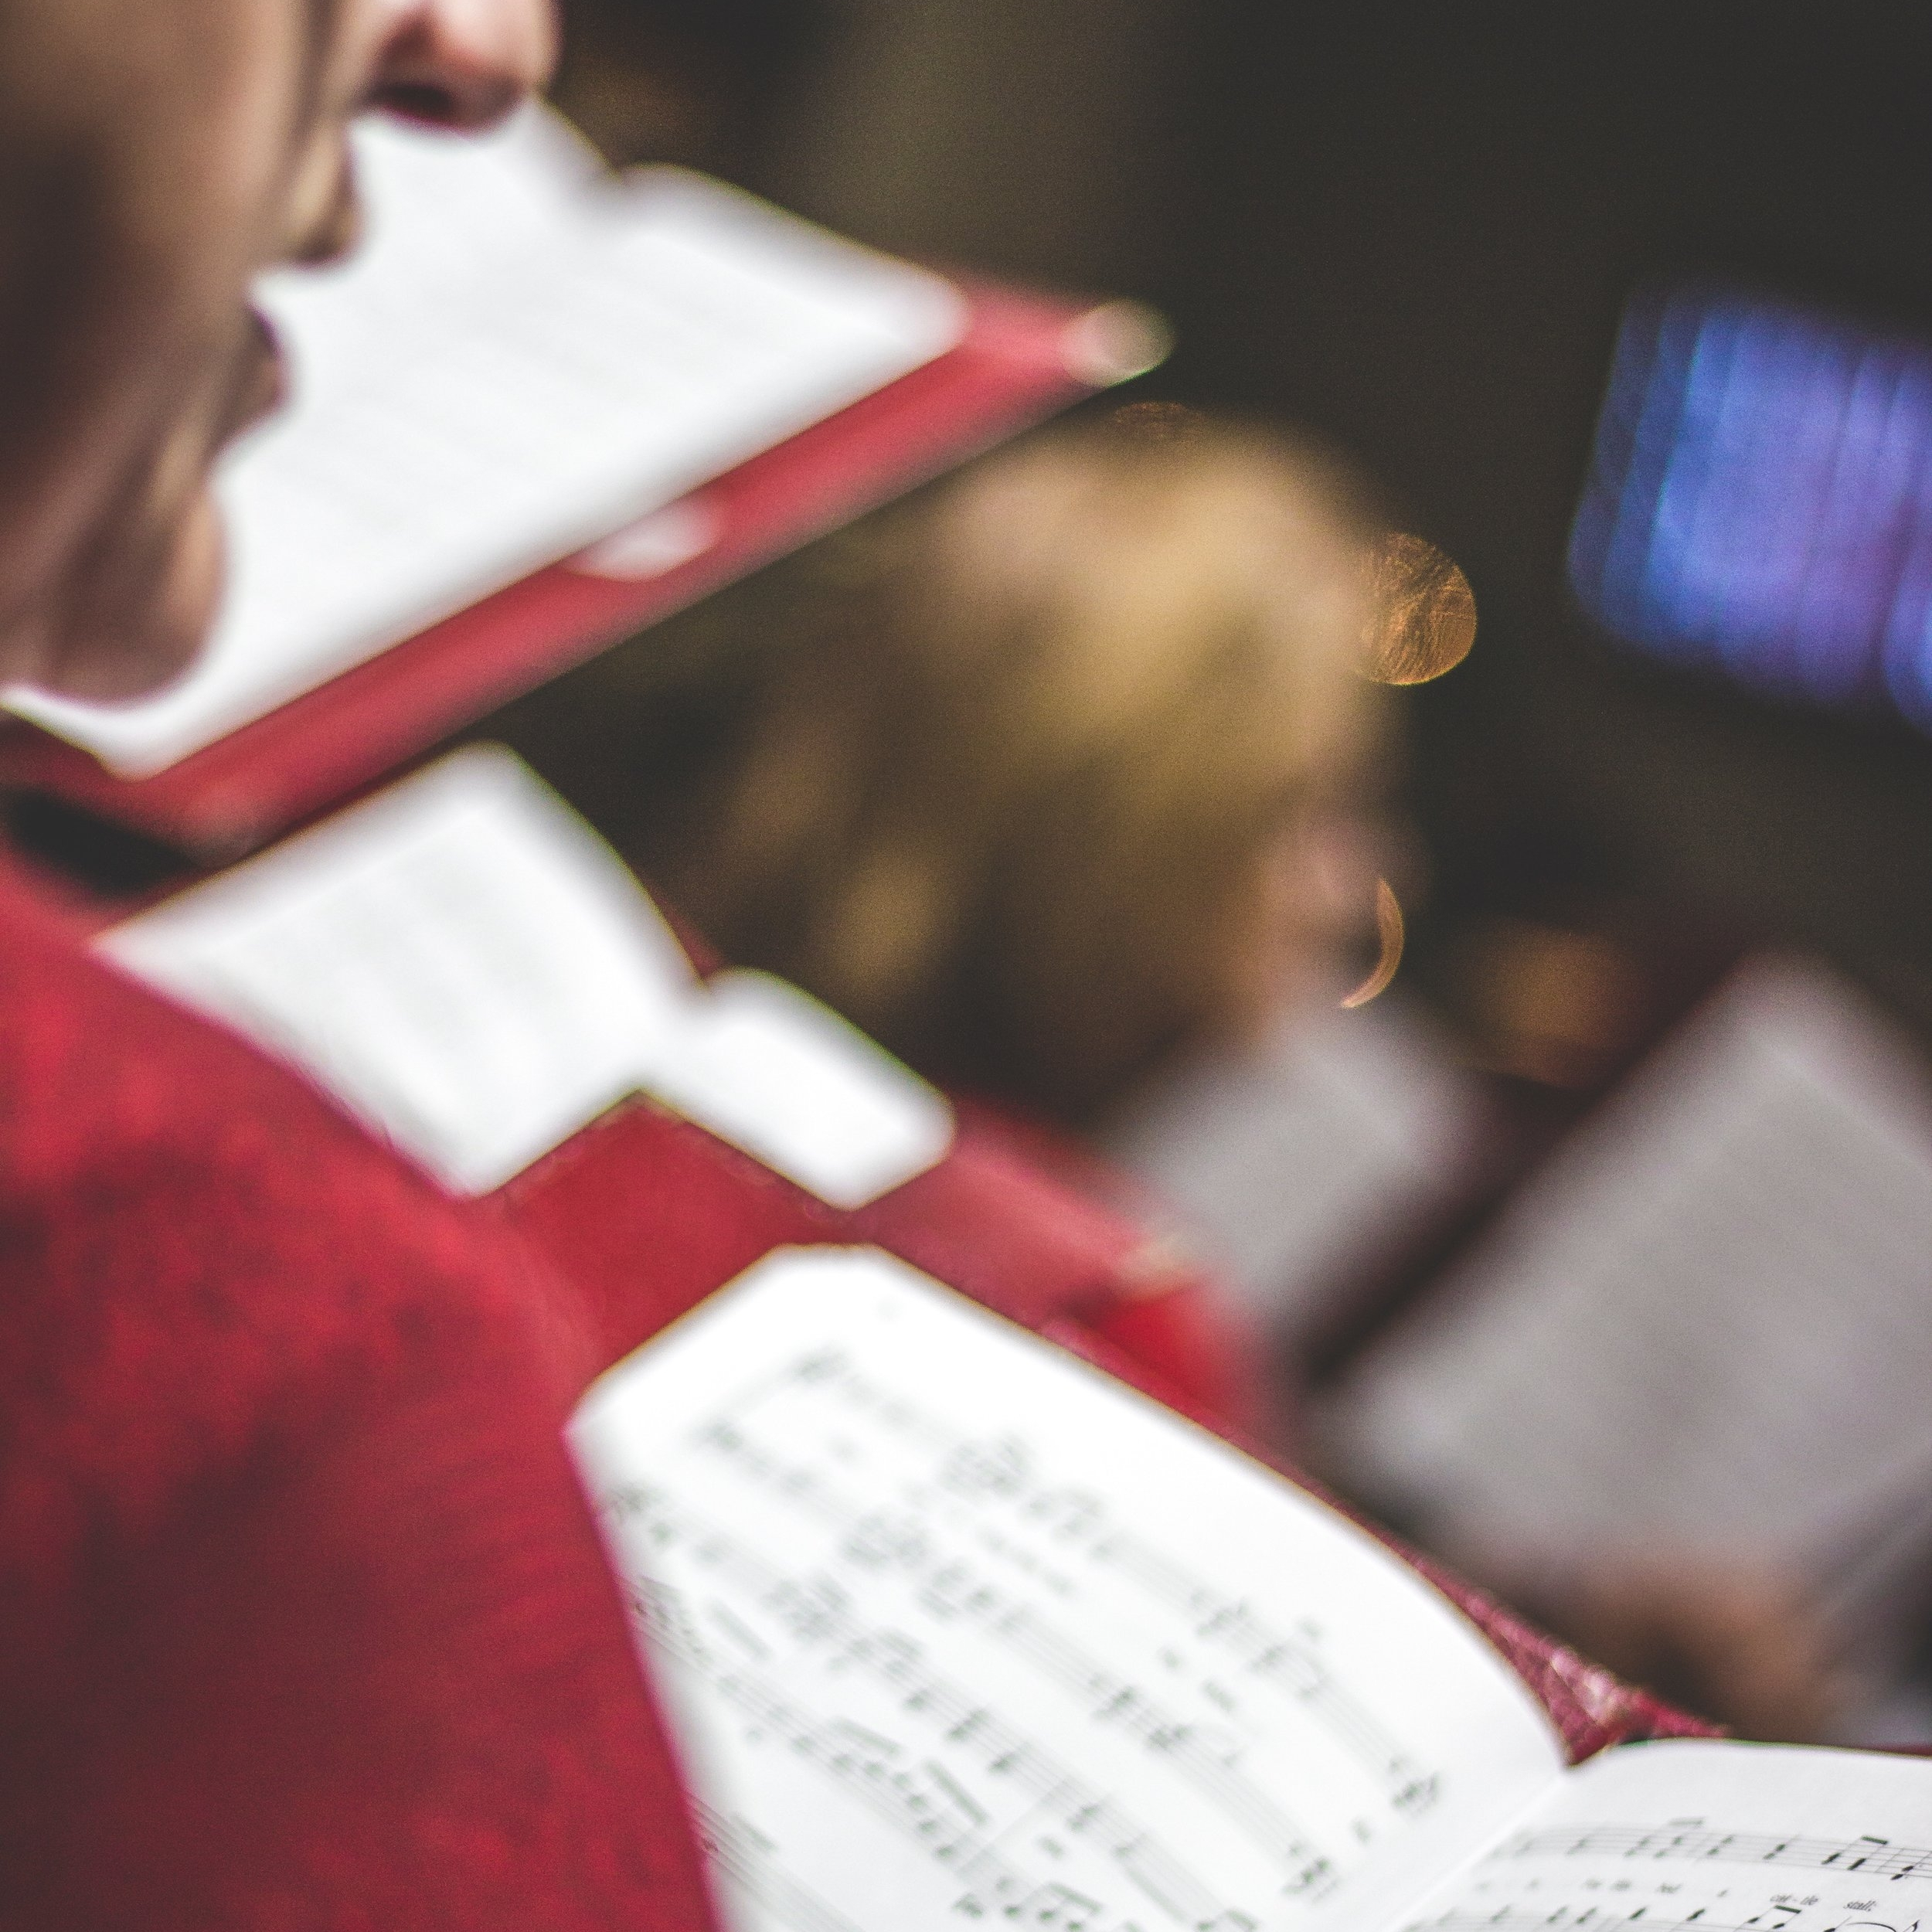 Music Ministries - Shout with joy to the Lord, all the earth! Worship the Lord with gladness. Come before him, singing with joy. Psalm 100:1-2